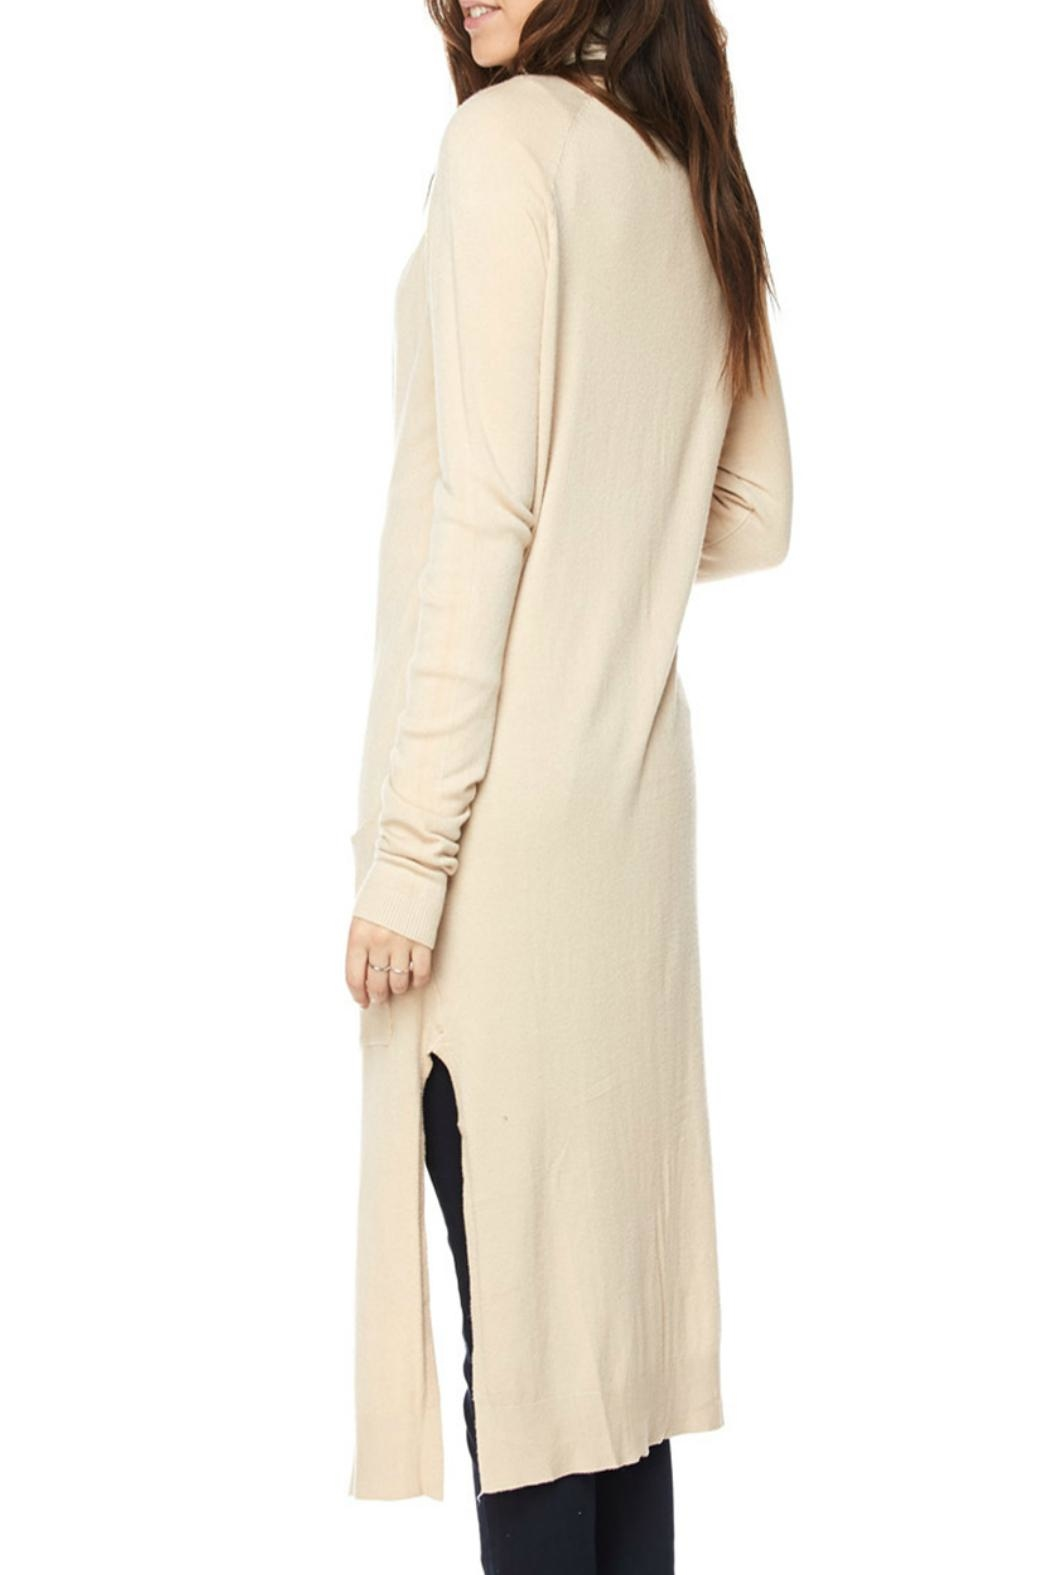 Love Tree Long Knit Duster-Cardigan - Front Full Image